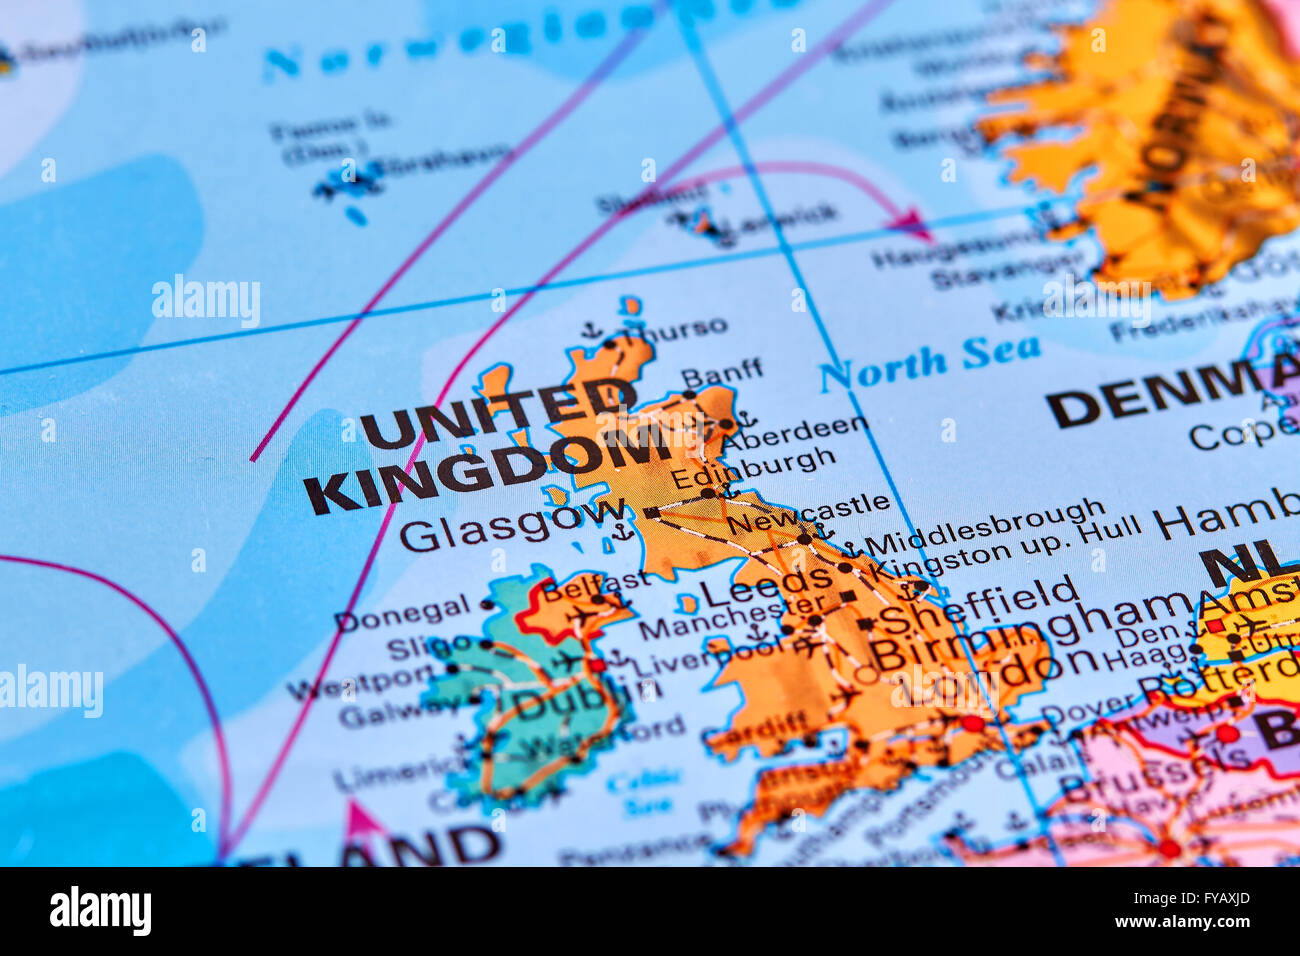 United Kingdom In Europe On The World Map Stock Photo 102887973 Alamy